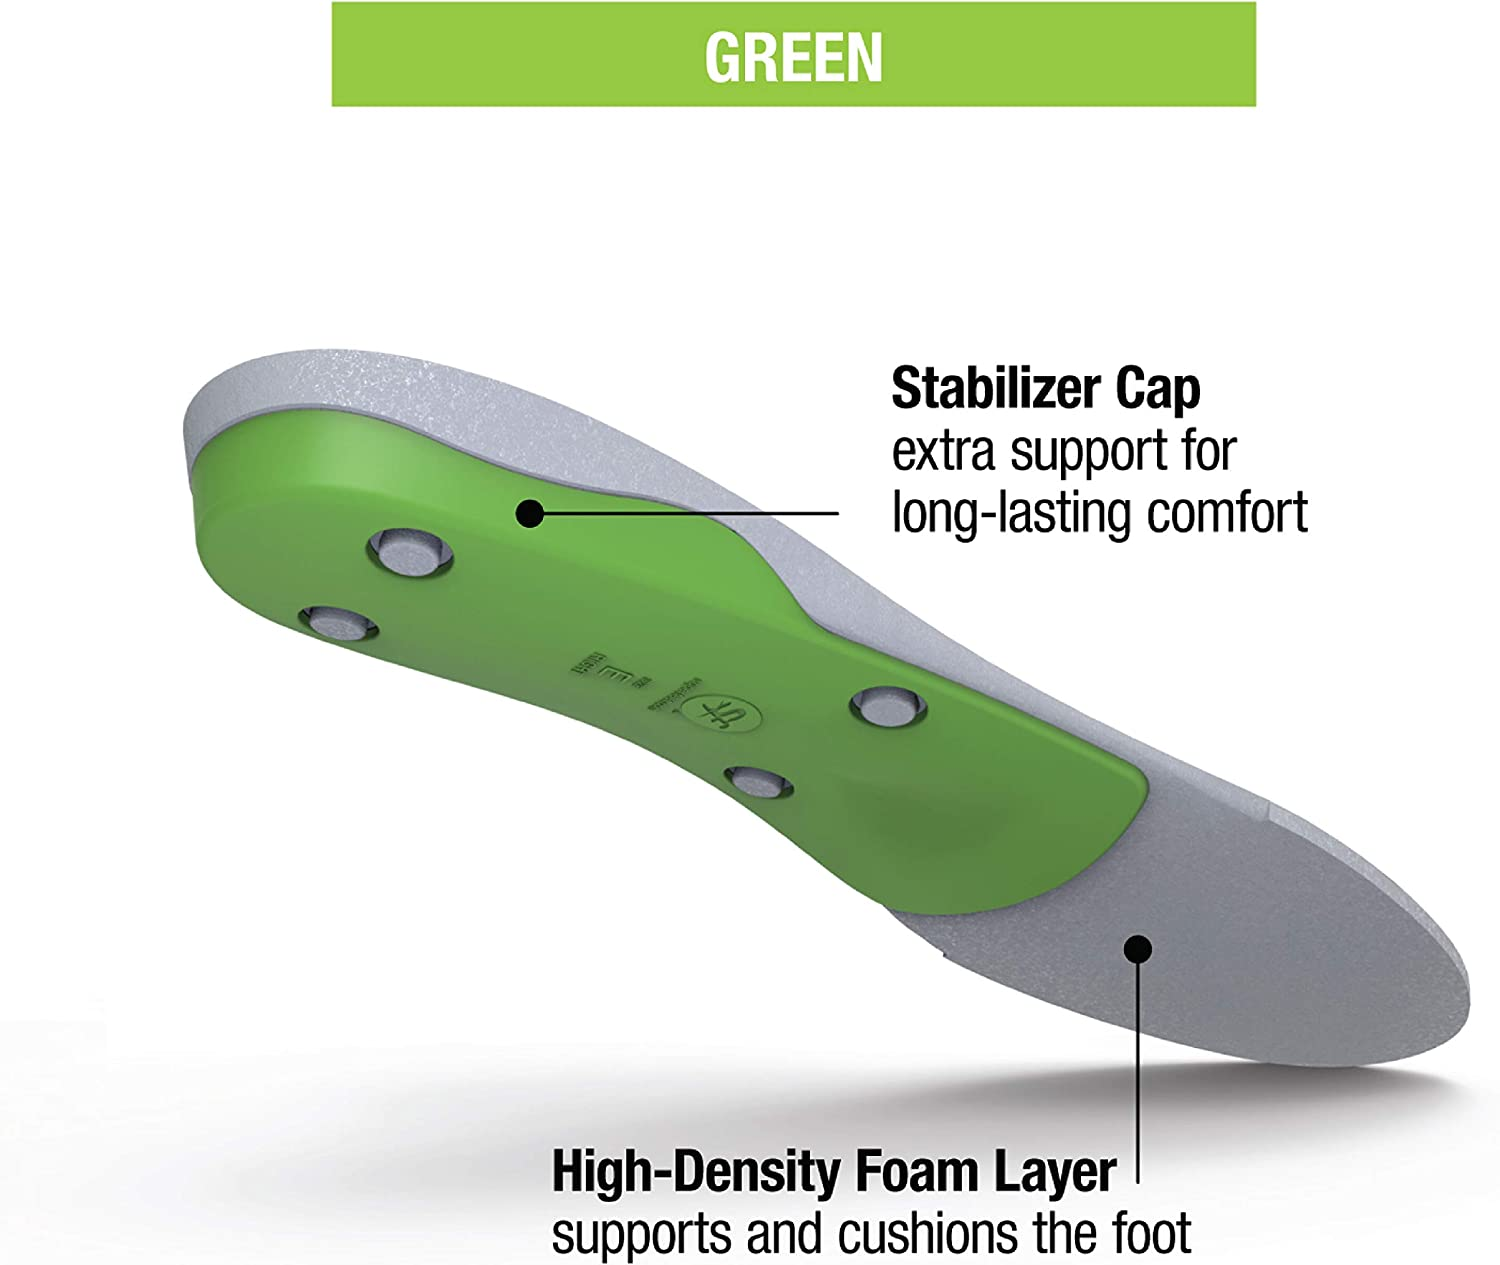 Superfeet GREEN Insoles, Professional-Grade High Arch Support, Orthotic Shoe Inserts for Maximum Support, Unisex, Green: Shoes